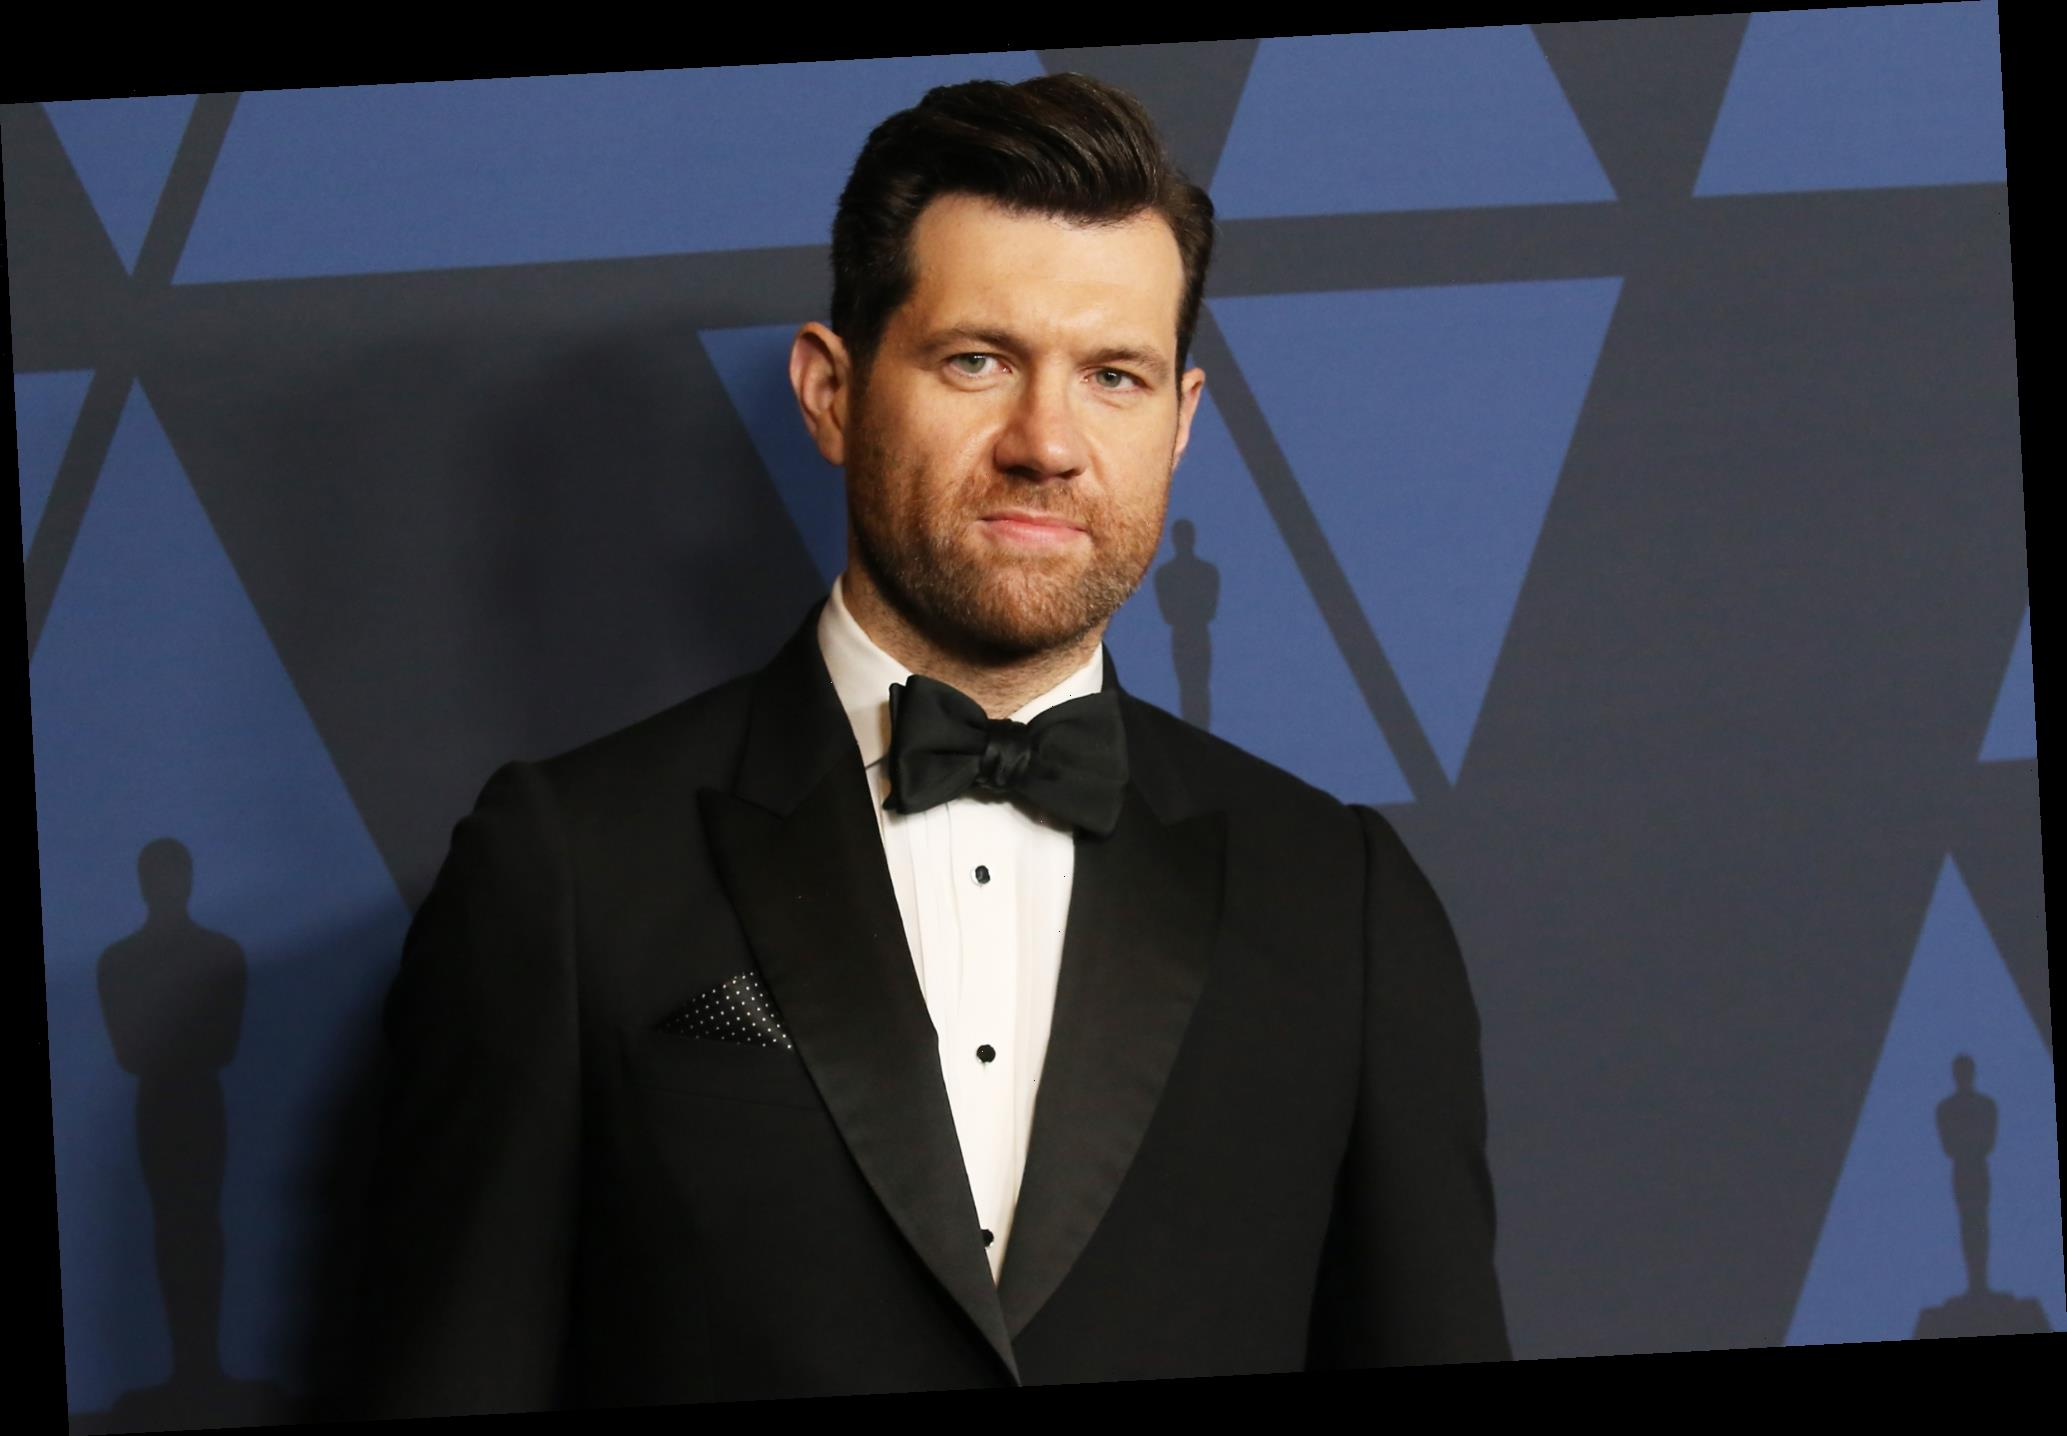 Billy Eichner to Star in Bros, the First Gay Rom-Com from a Major Studio: 'Only Took 100 Years'